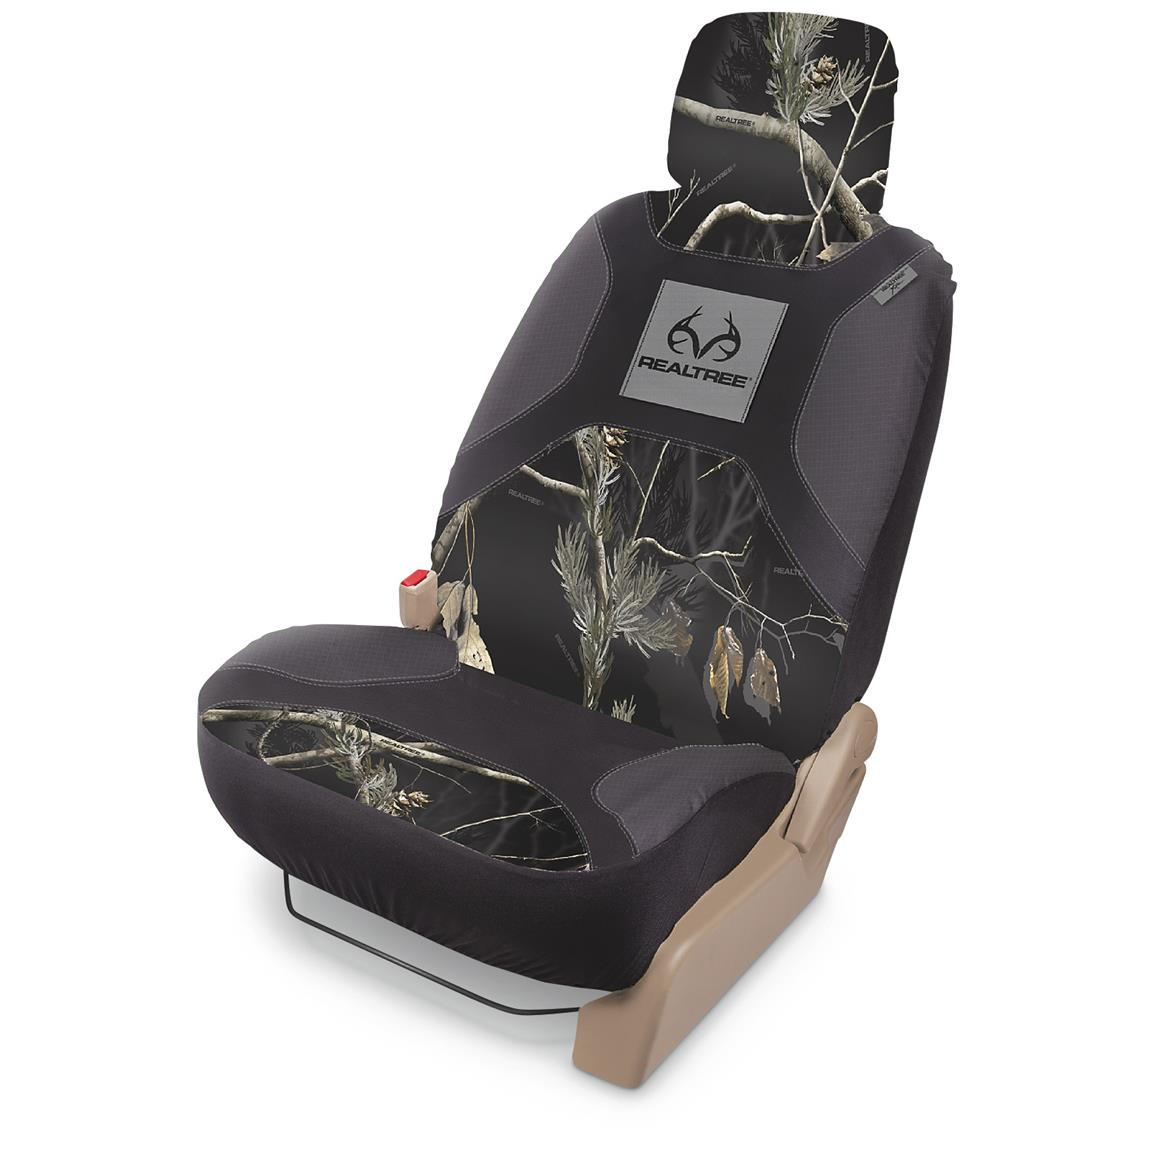 Universal Low-back Camo Seat Cover, Realtree Outfitters